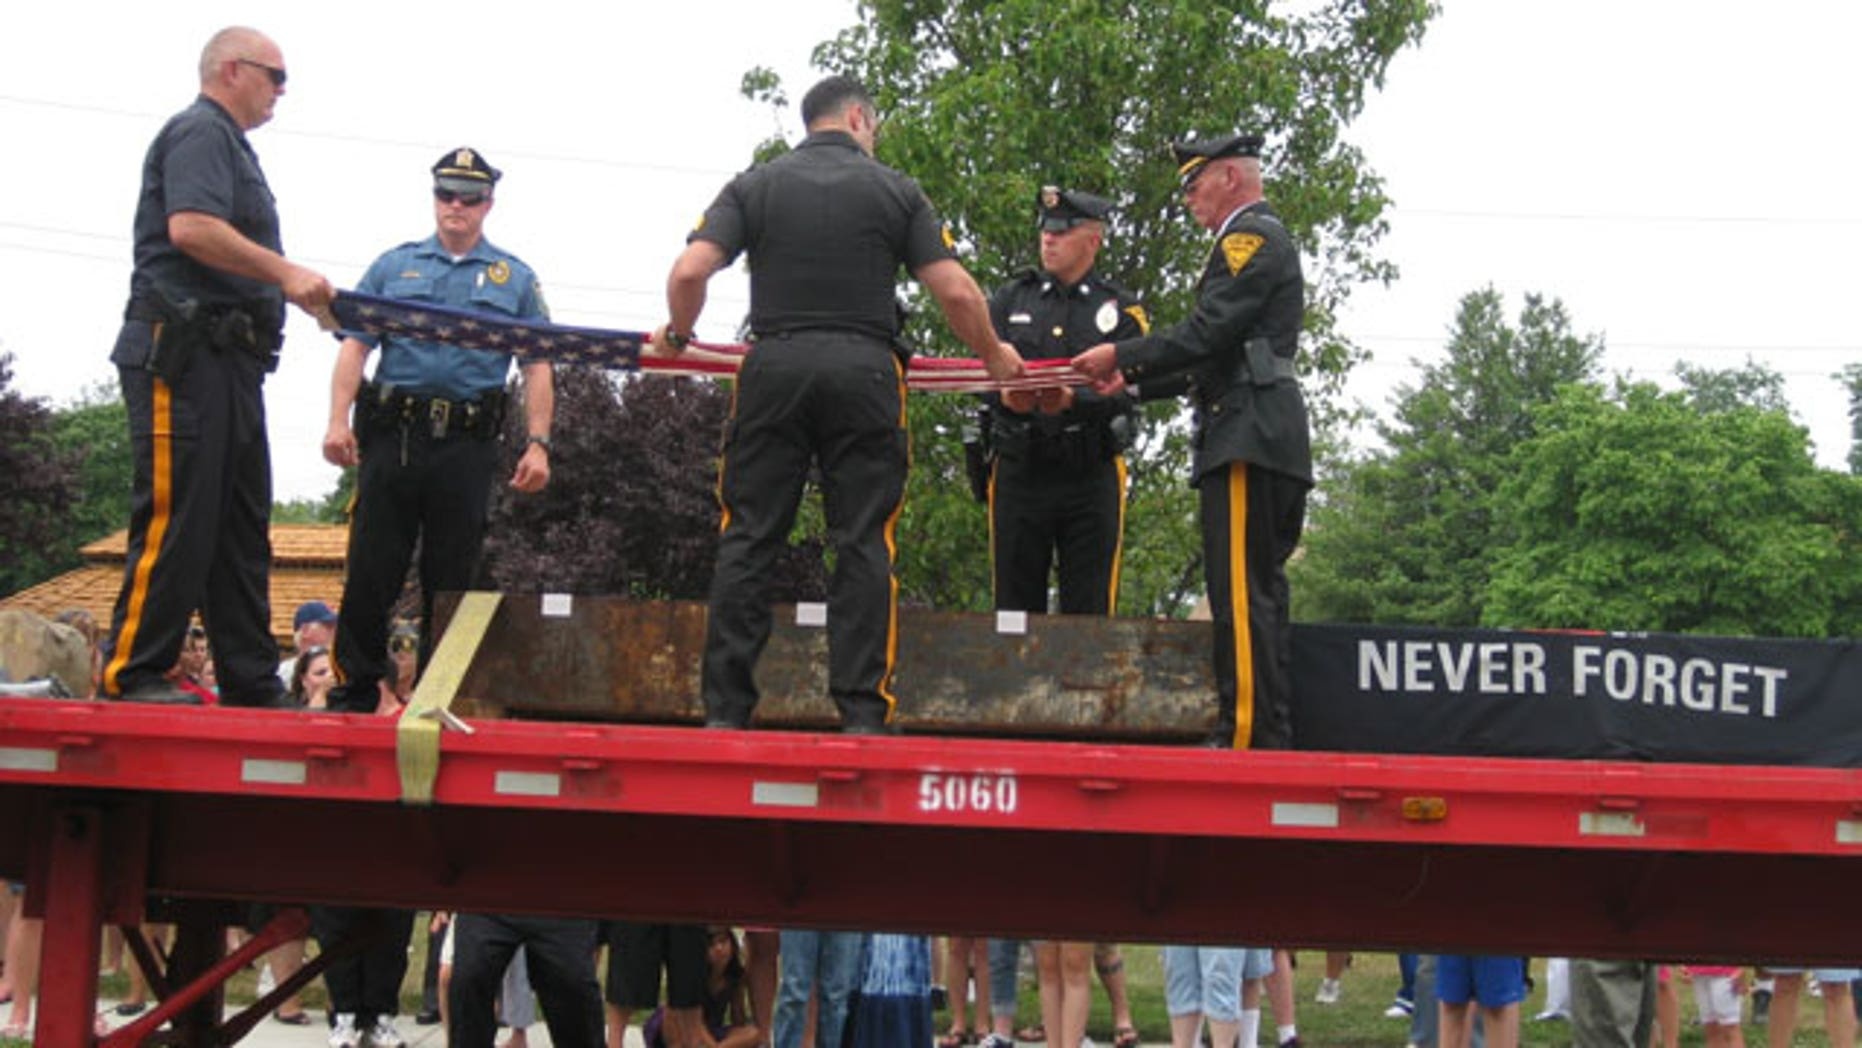 A steel memorial from a piece of the world trade center was given by the Port Authority of New York and New Jersey to Brooklawn, N.J.